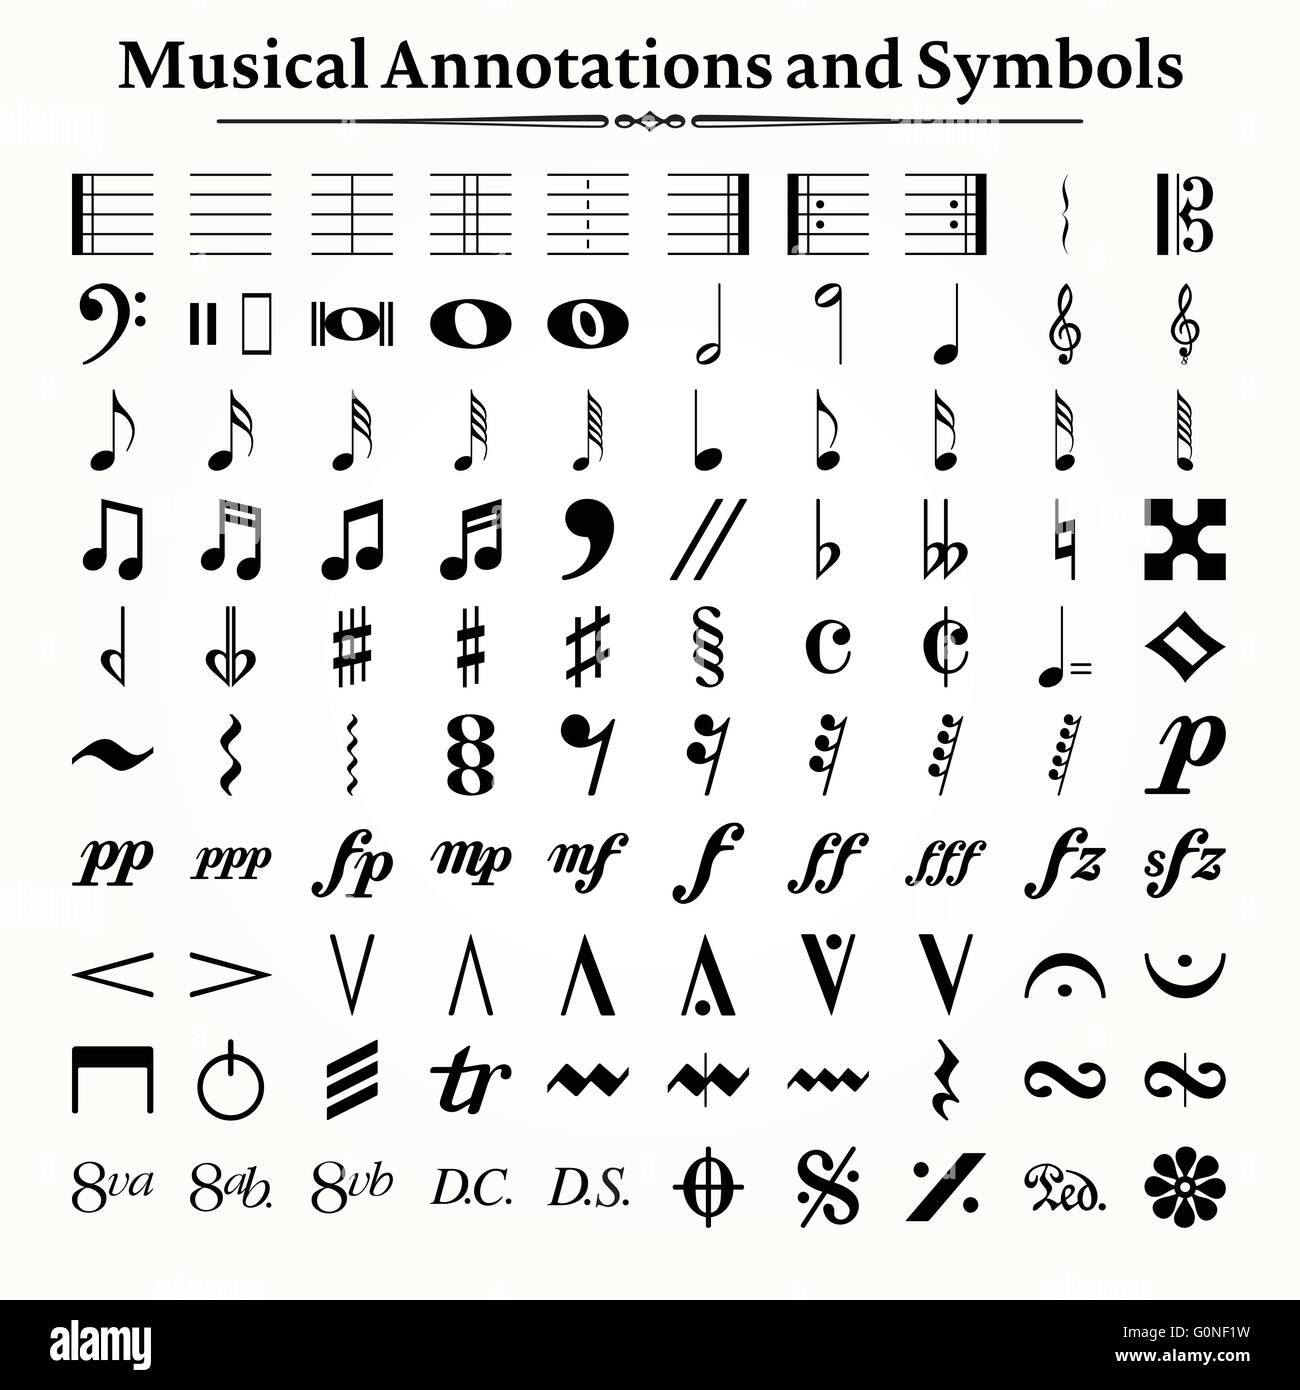 Elements Of Musical Symbols Icons And Annotations Stock Vector Art